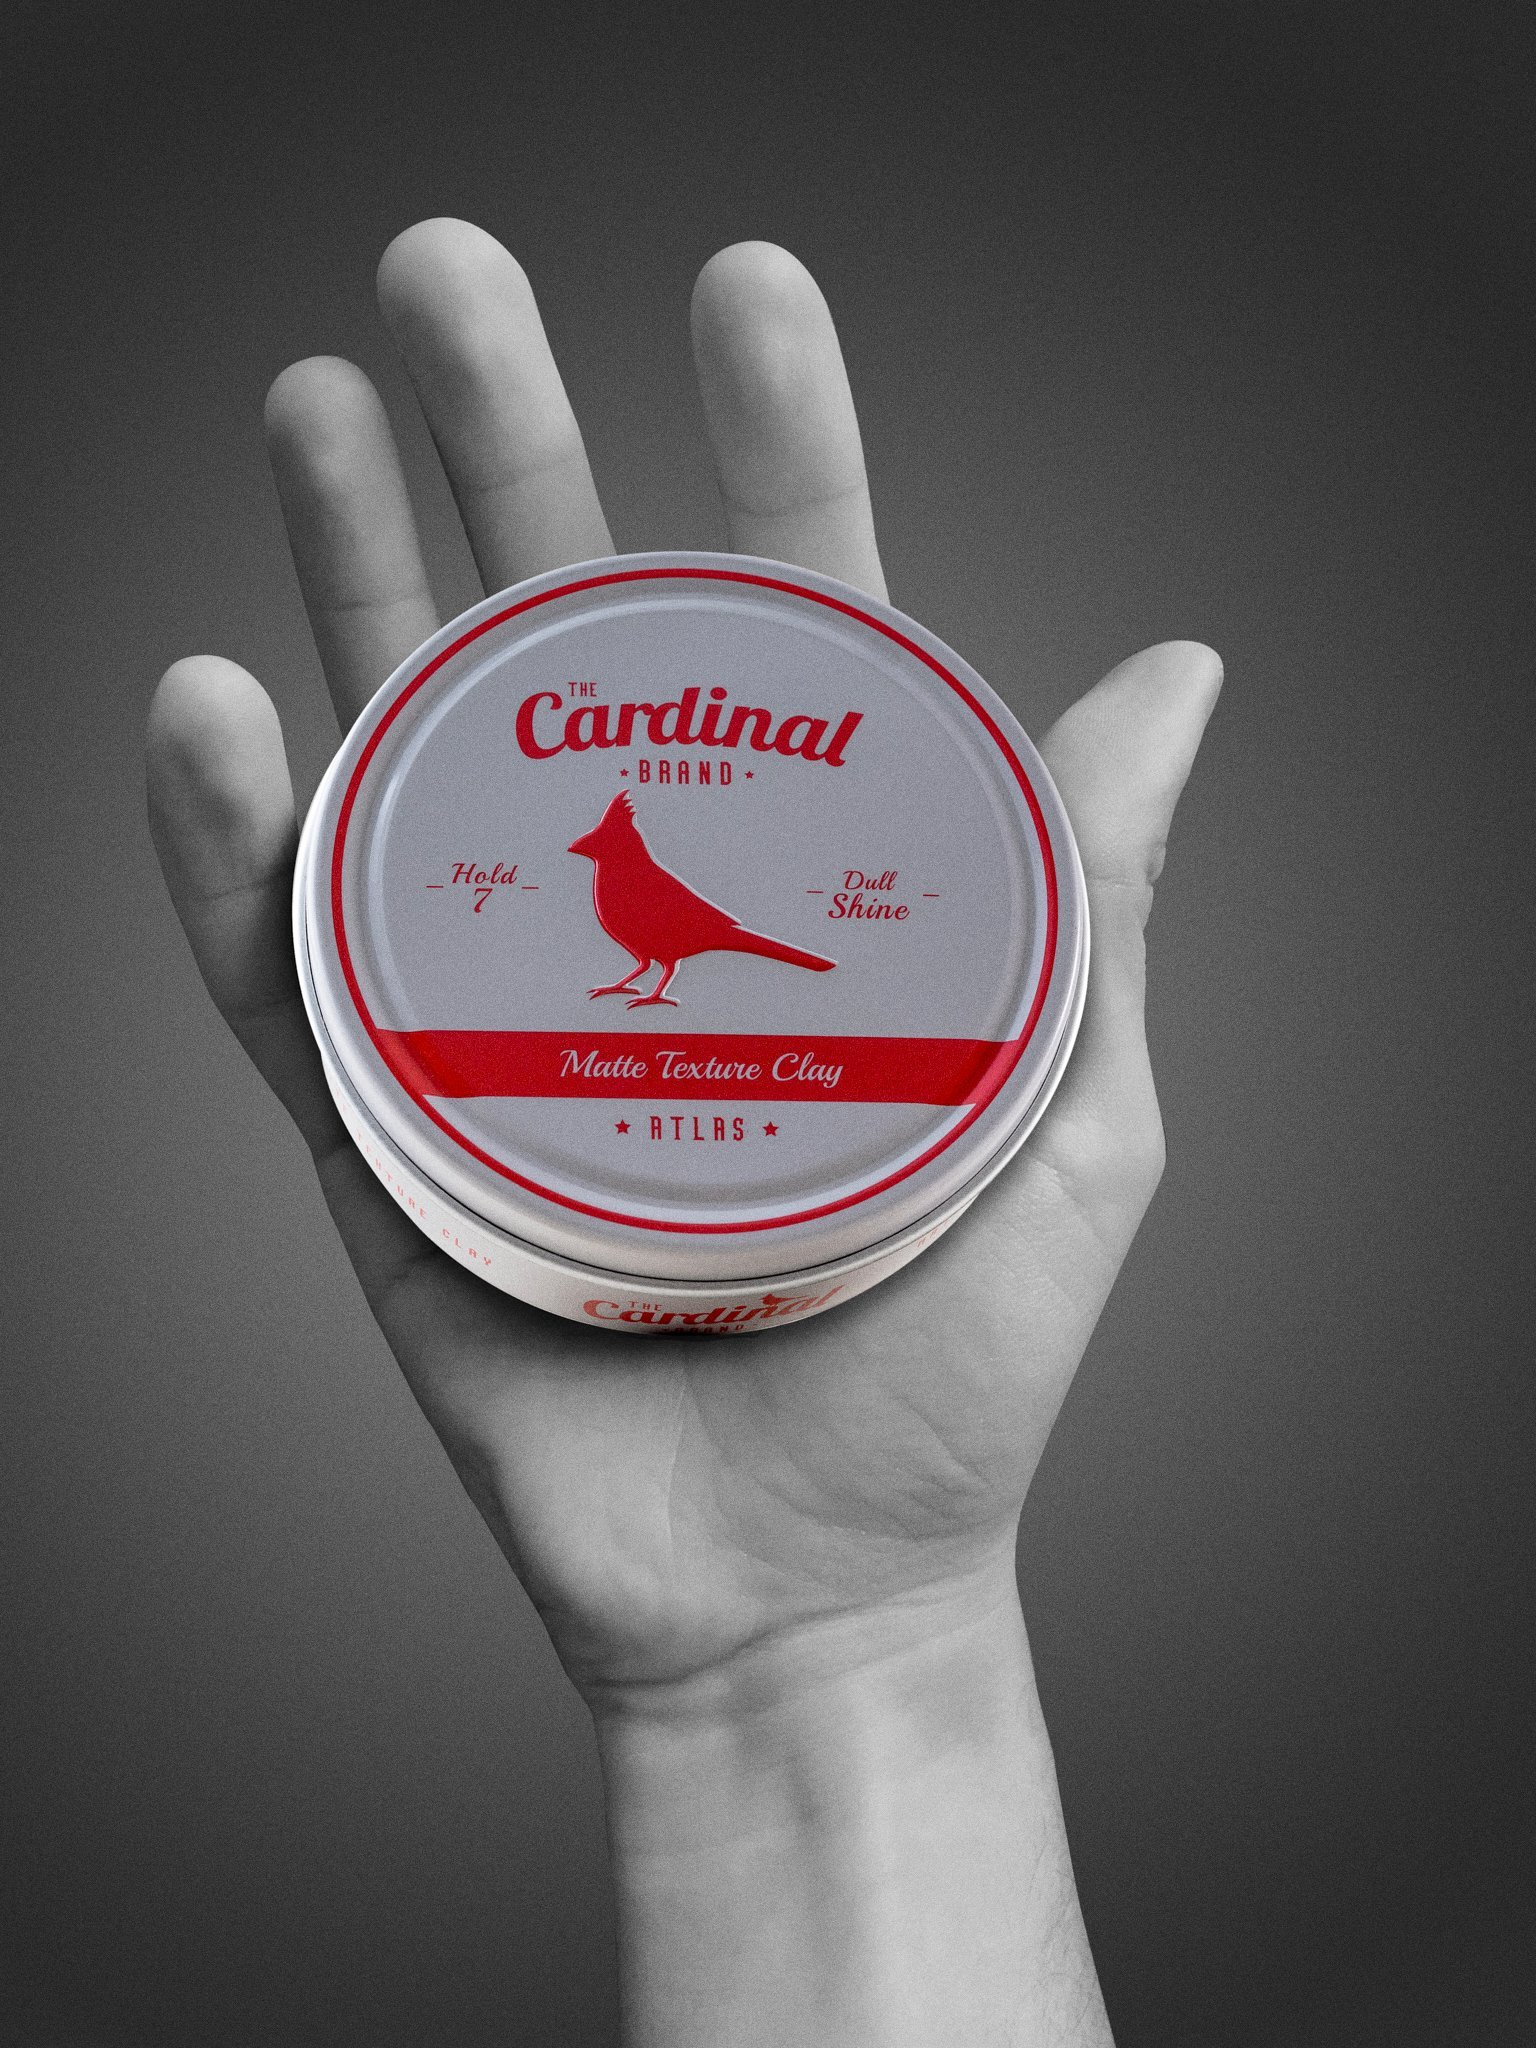 The Cardinal Brand Atlas Matte Texture Clay 3.4 Ounce is an Ultra Lightweight, Matte Hair Clay, Medium to Firm Hold, Thickening, Volume Building, Hair Styling and Grooming Product for Men and Women by The Cardinal Brand (Image #4)